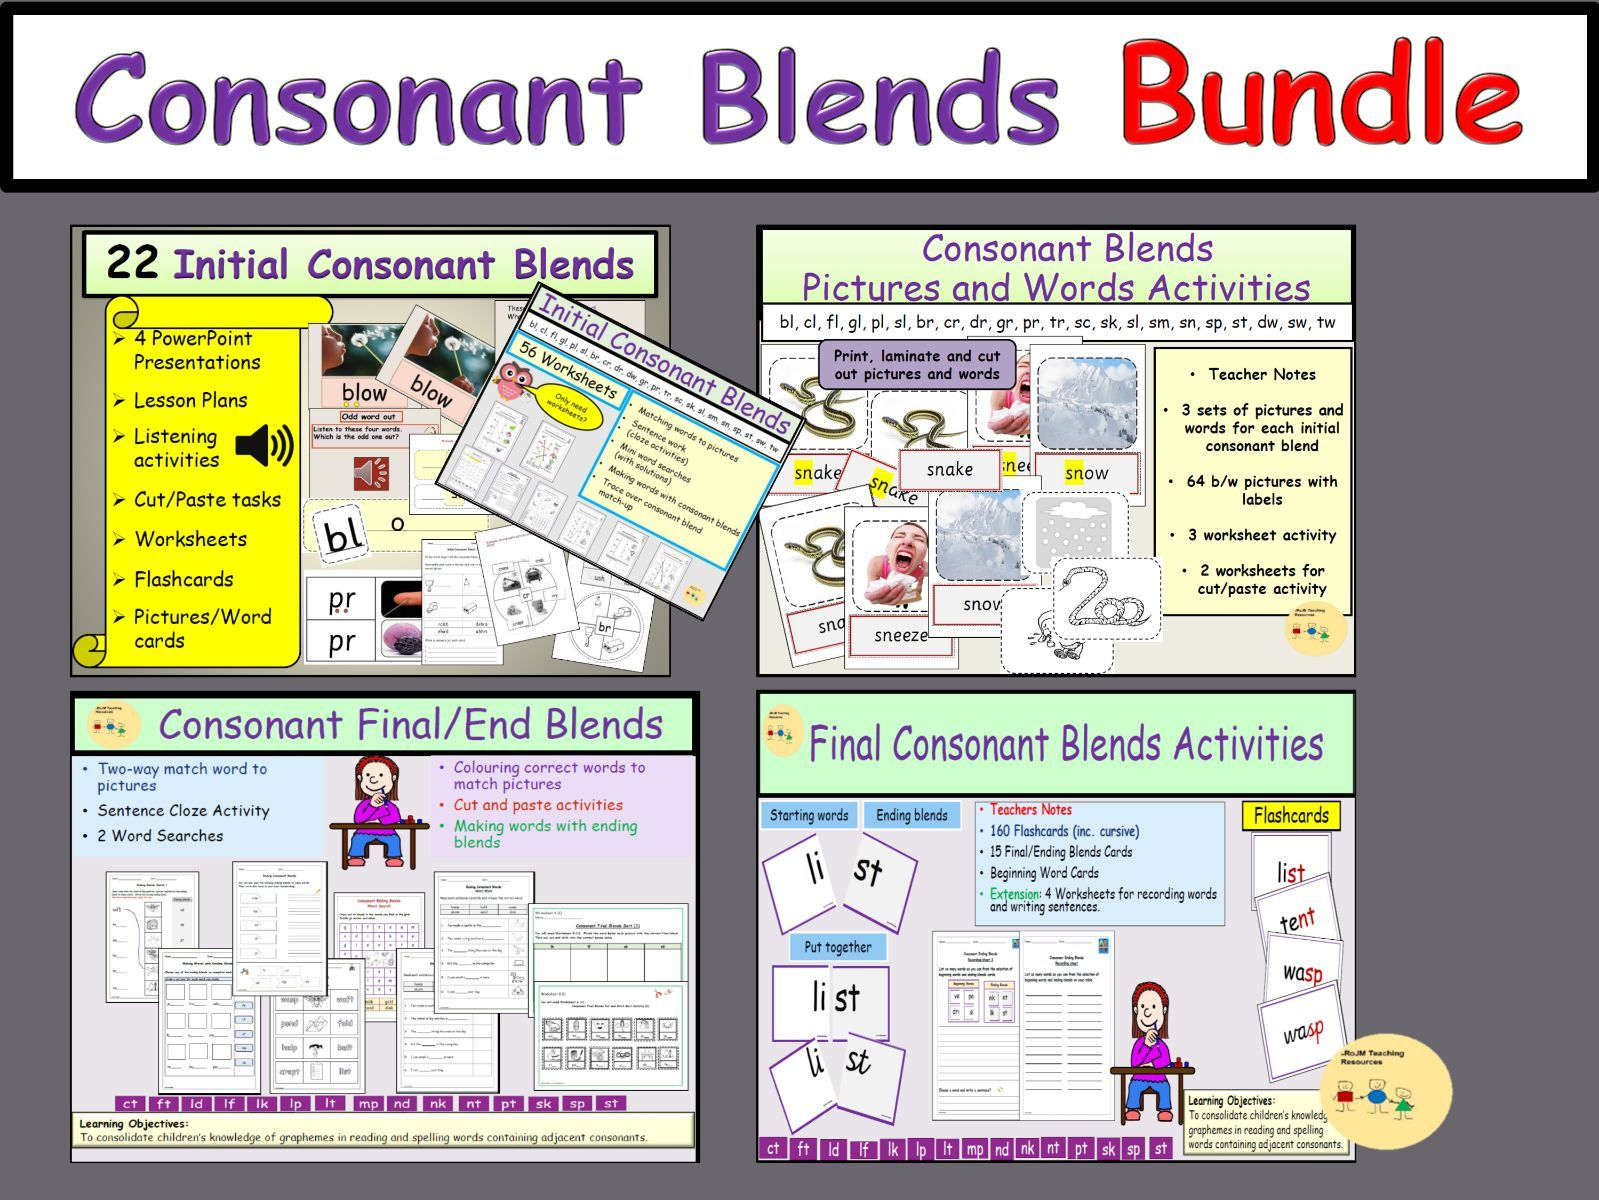 Consonant Blends Bundle - Initial/Beginning and Final Consonant Blends Worksheets Activities Flashcards Presentations Lesson Plans